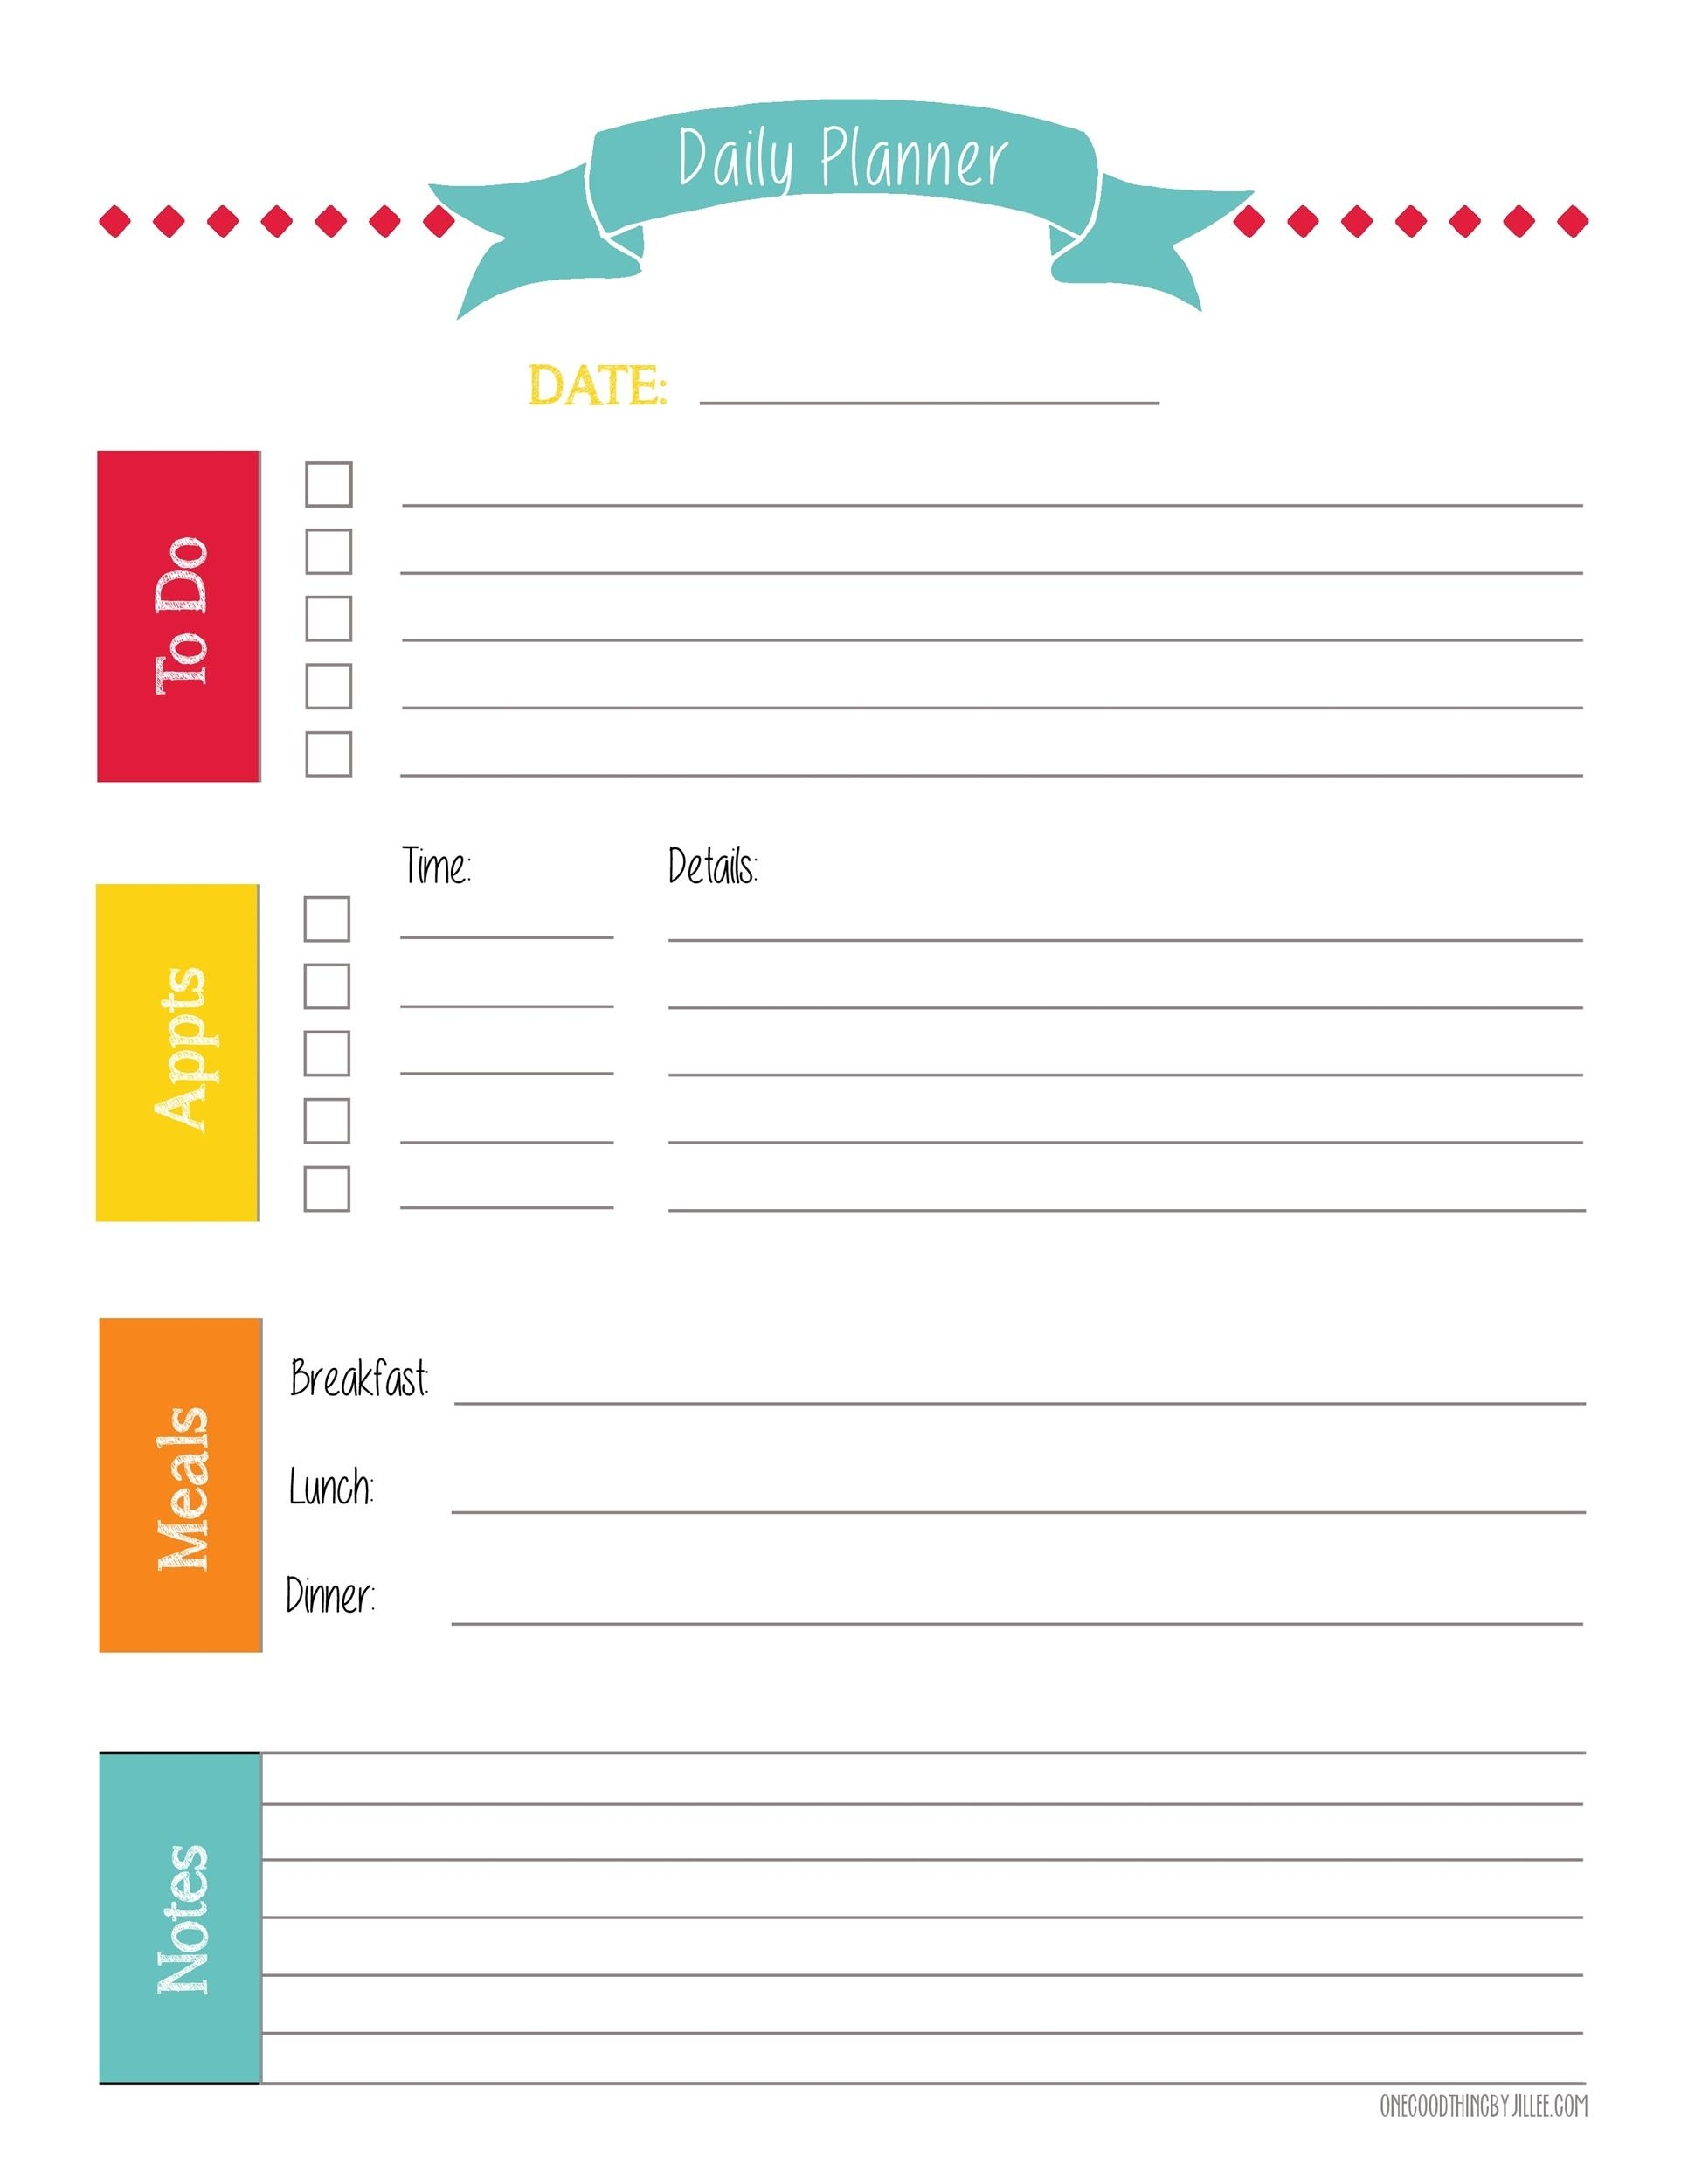 Catch Daily Organizer Free Printable Template